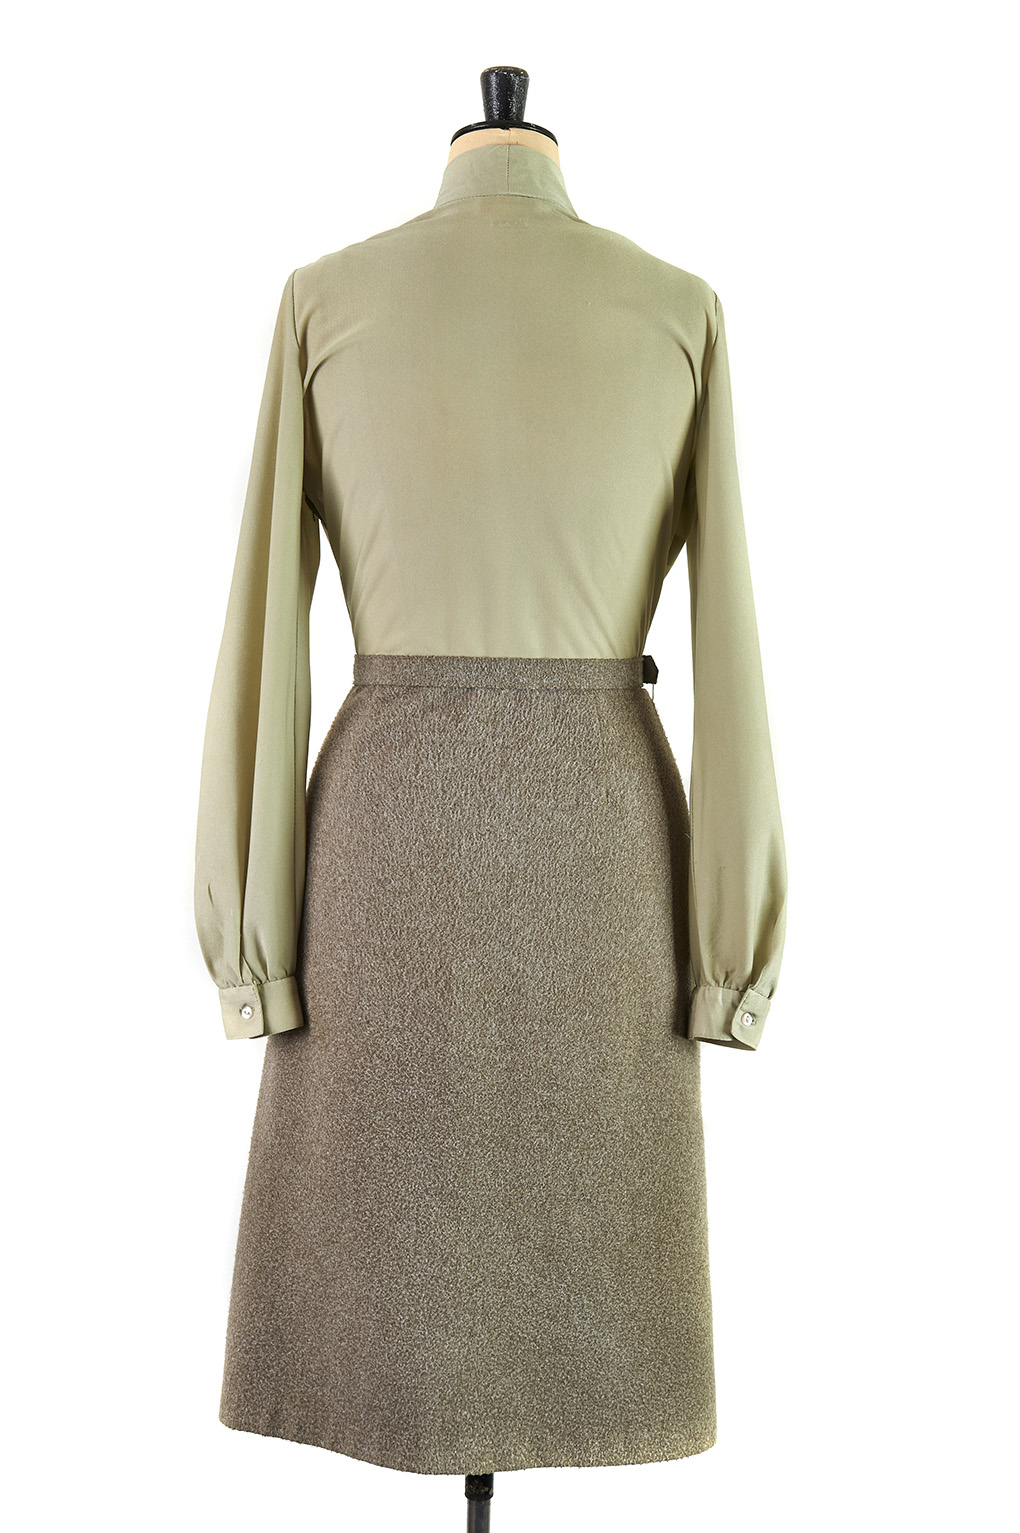 Willow Green Pussy Bow Day Dress by Berkertex - Size 16